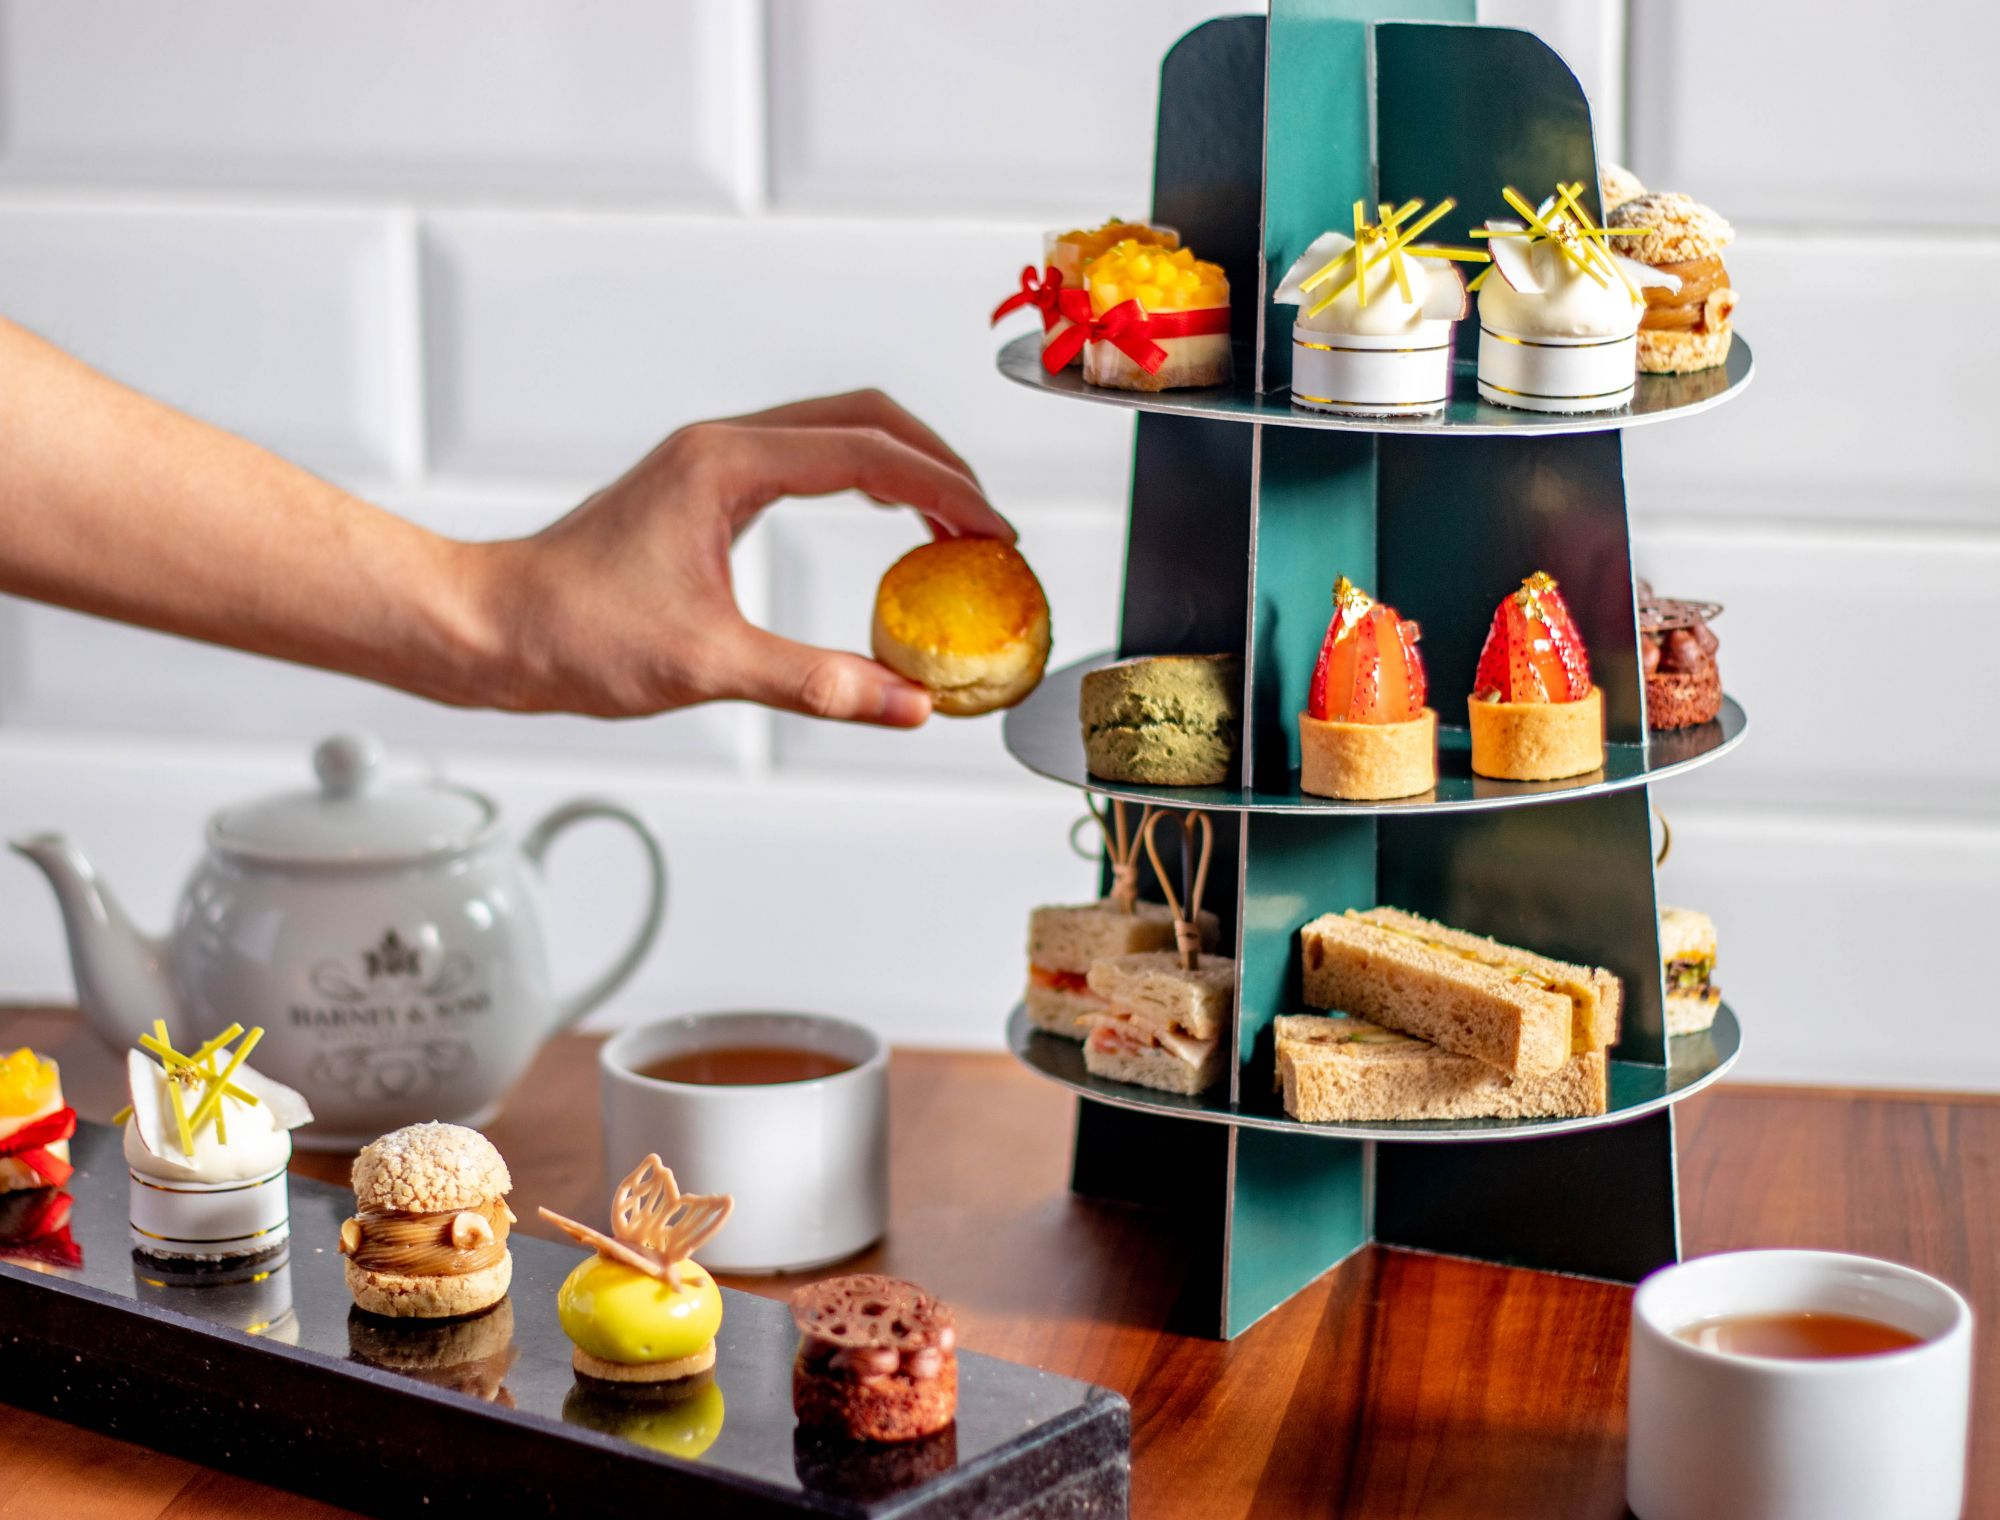 Altitude's Afternoon Tea Box contains sandwiches, pastries and other such treats